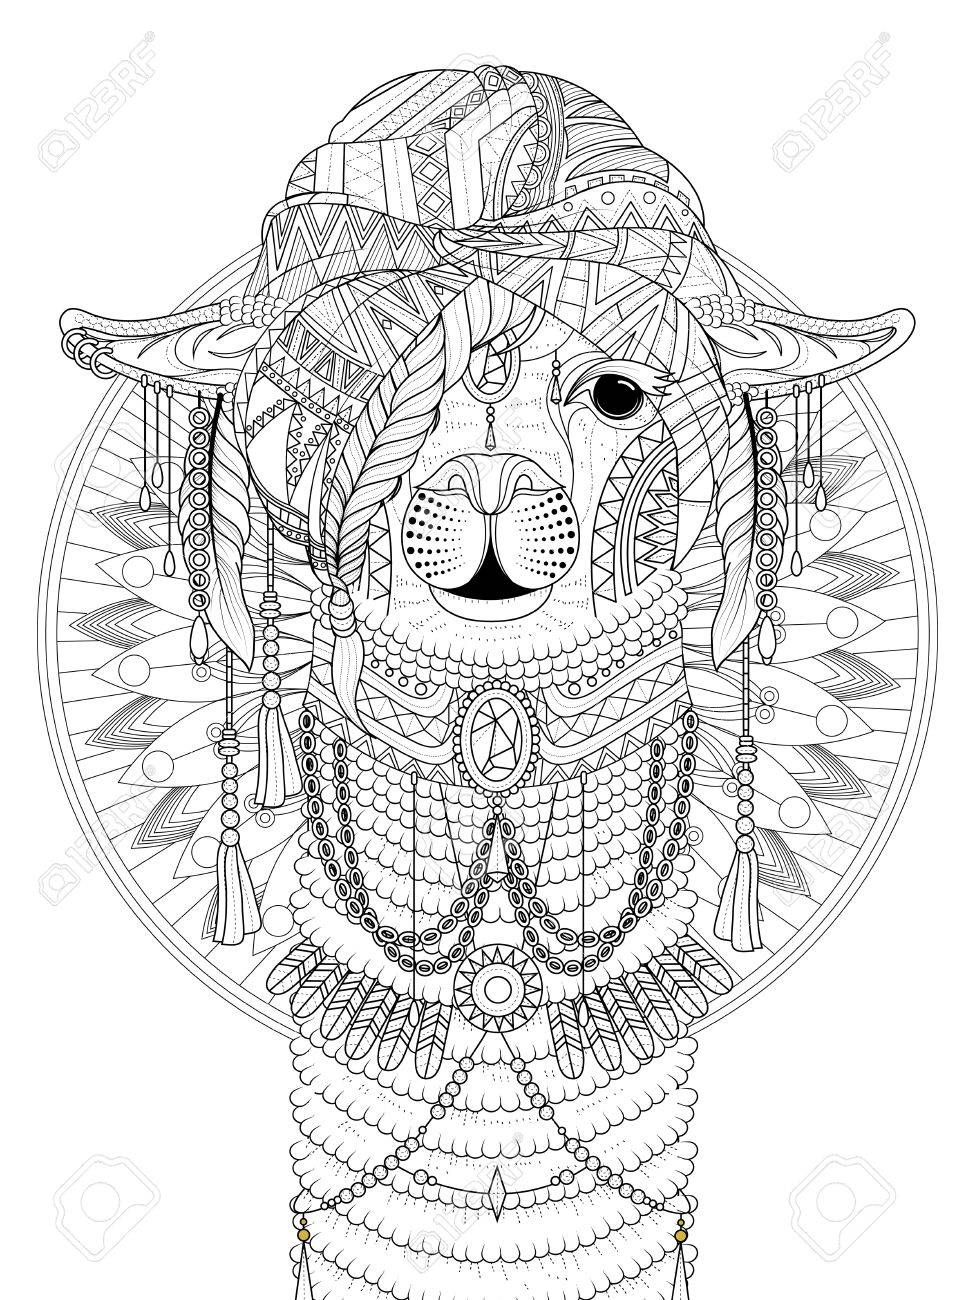 adult coloring page alpaca with splendid headwear royalty free cliparts vectors and stock illustration image 56914087 123rf com